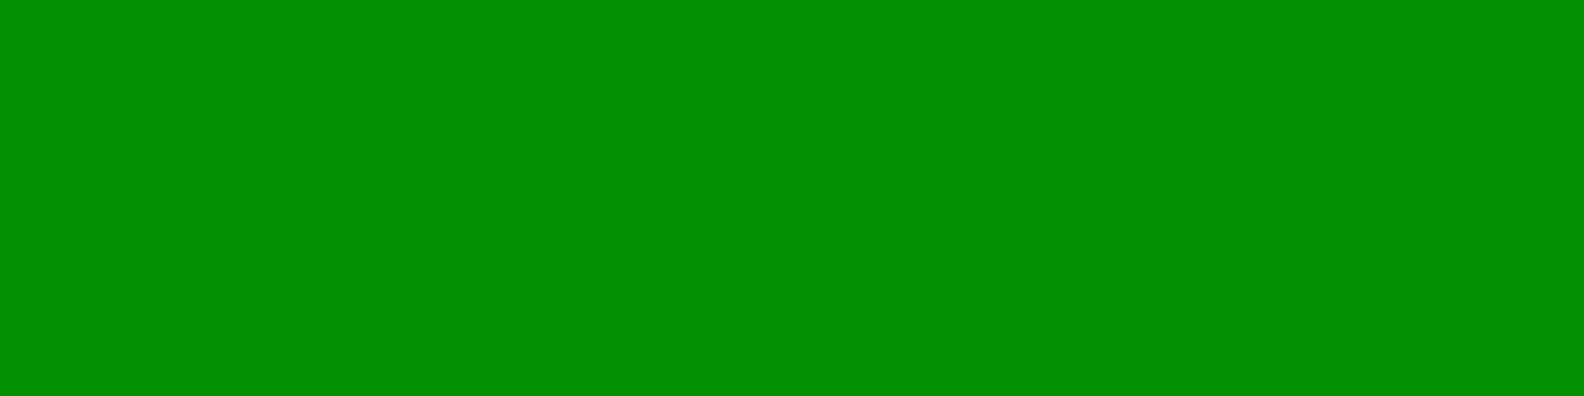 1584x396 Islamic Green Solid Color Background